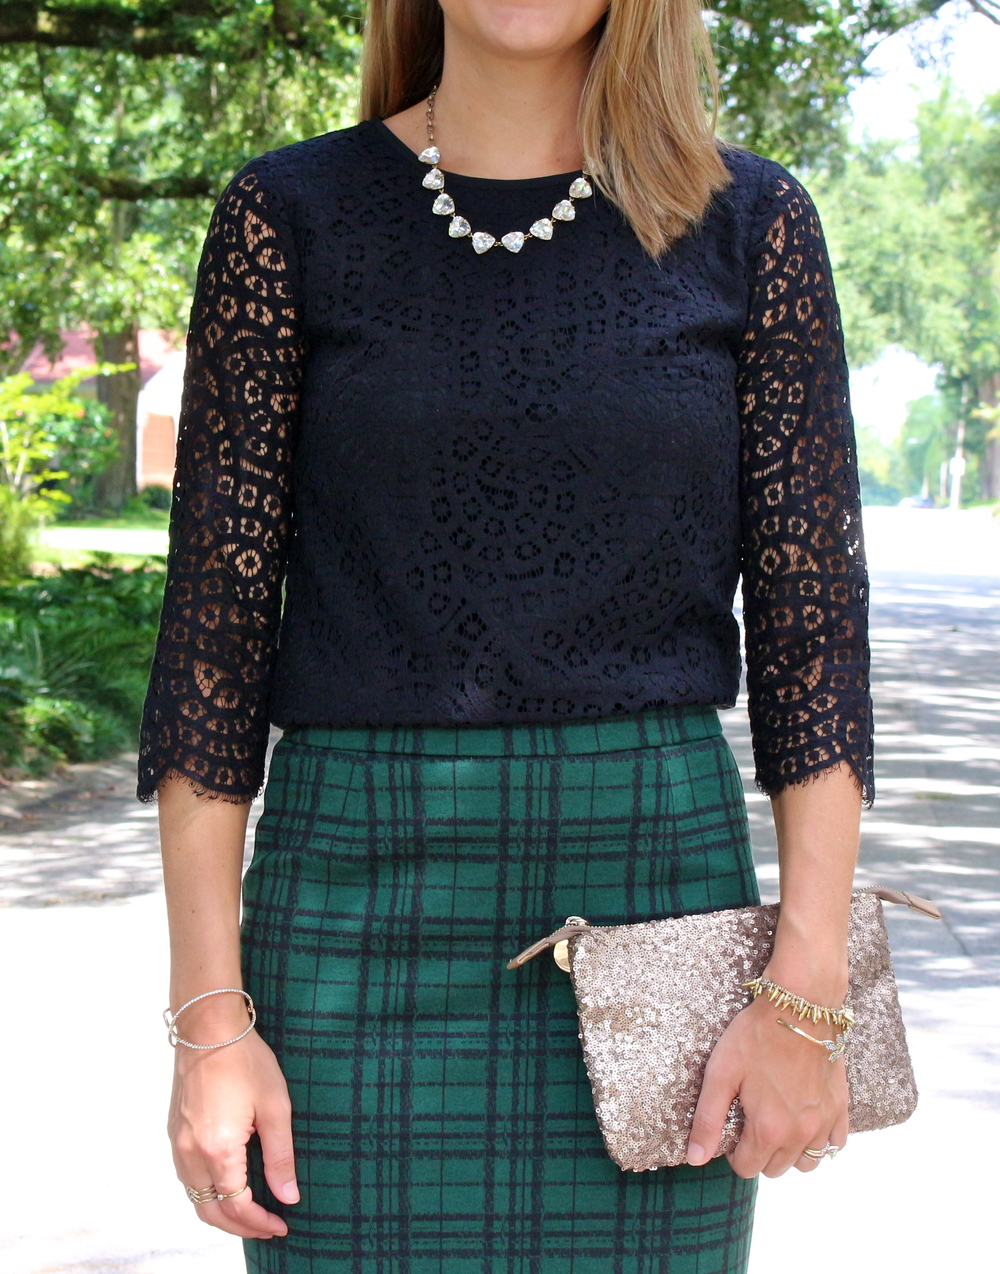 Black lace top and green plaid pencil skirt